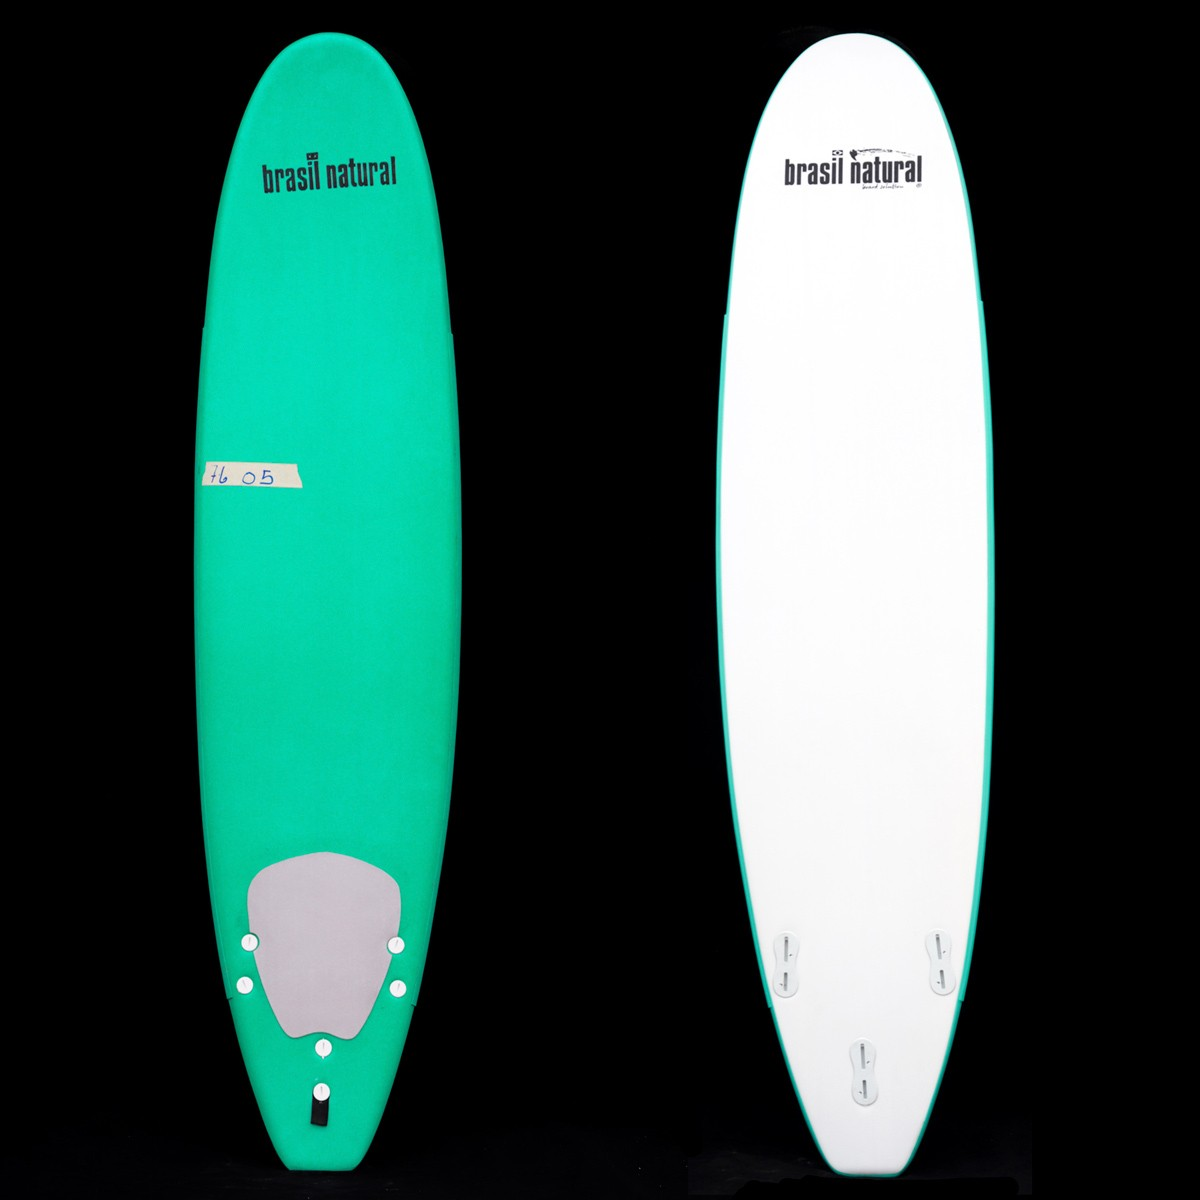 Prancha de surf fun board 7.6 - OUTLET 05